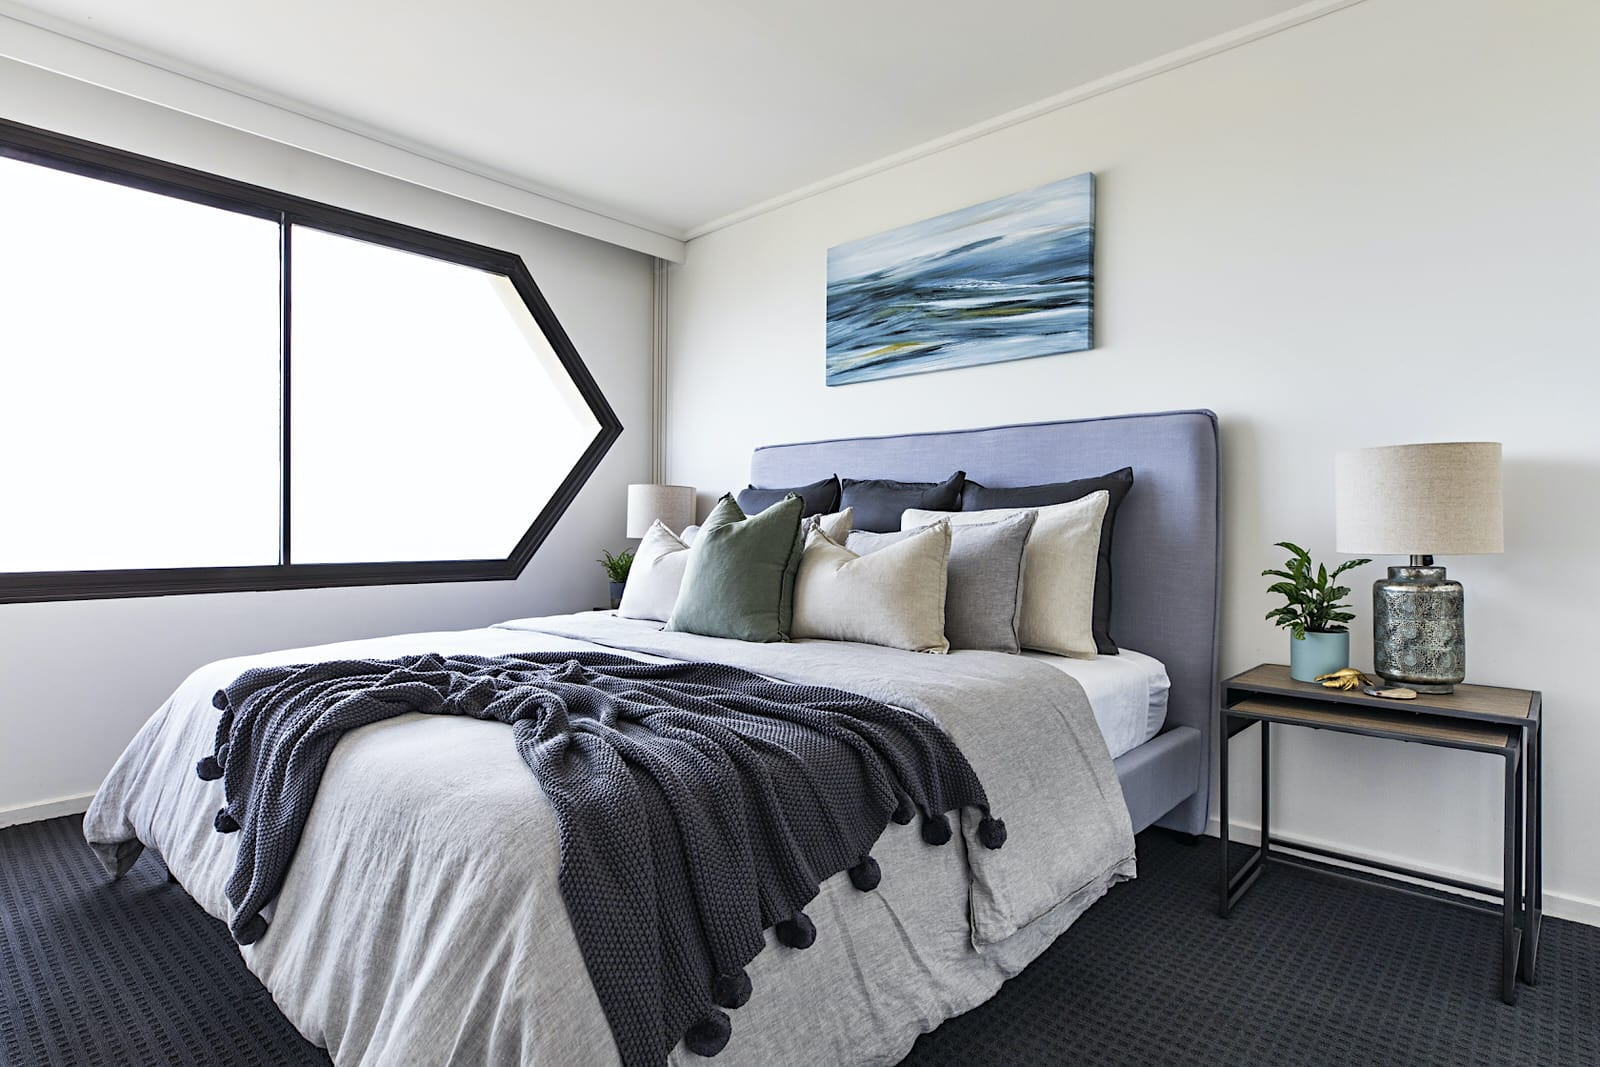 coastal bedroom design with soft grey linen bedding from adairs and abstract coastal art above bed